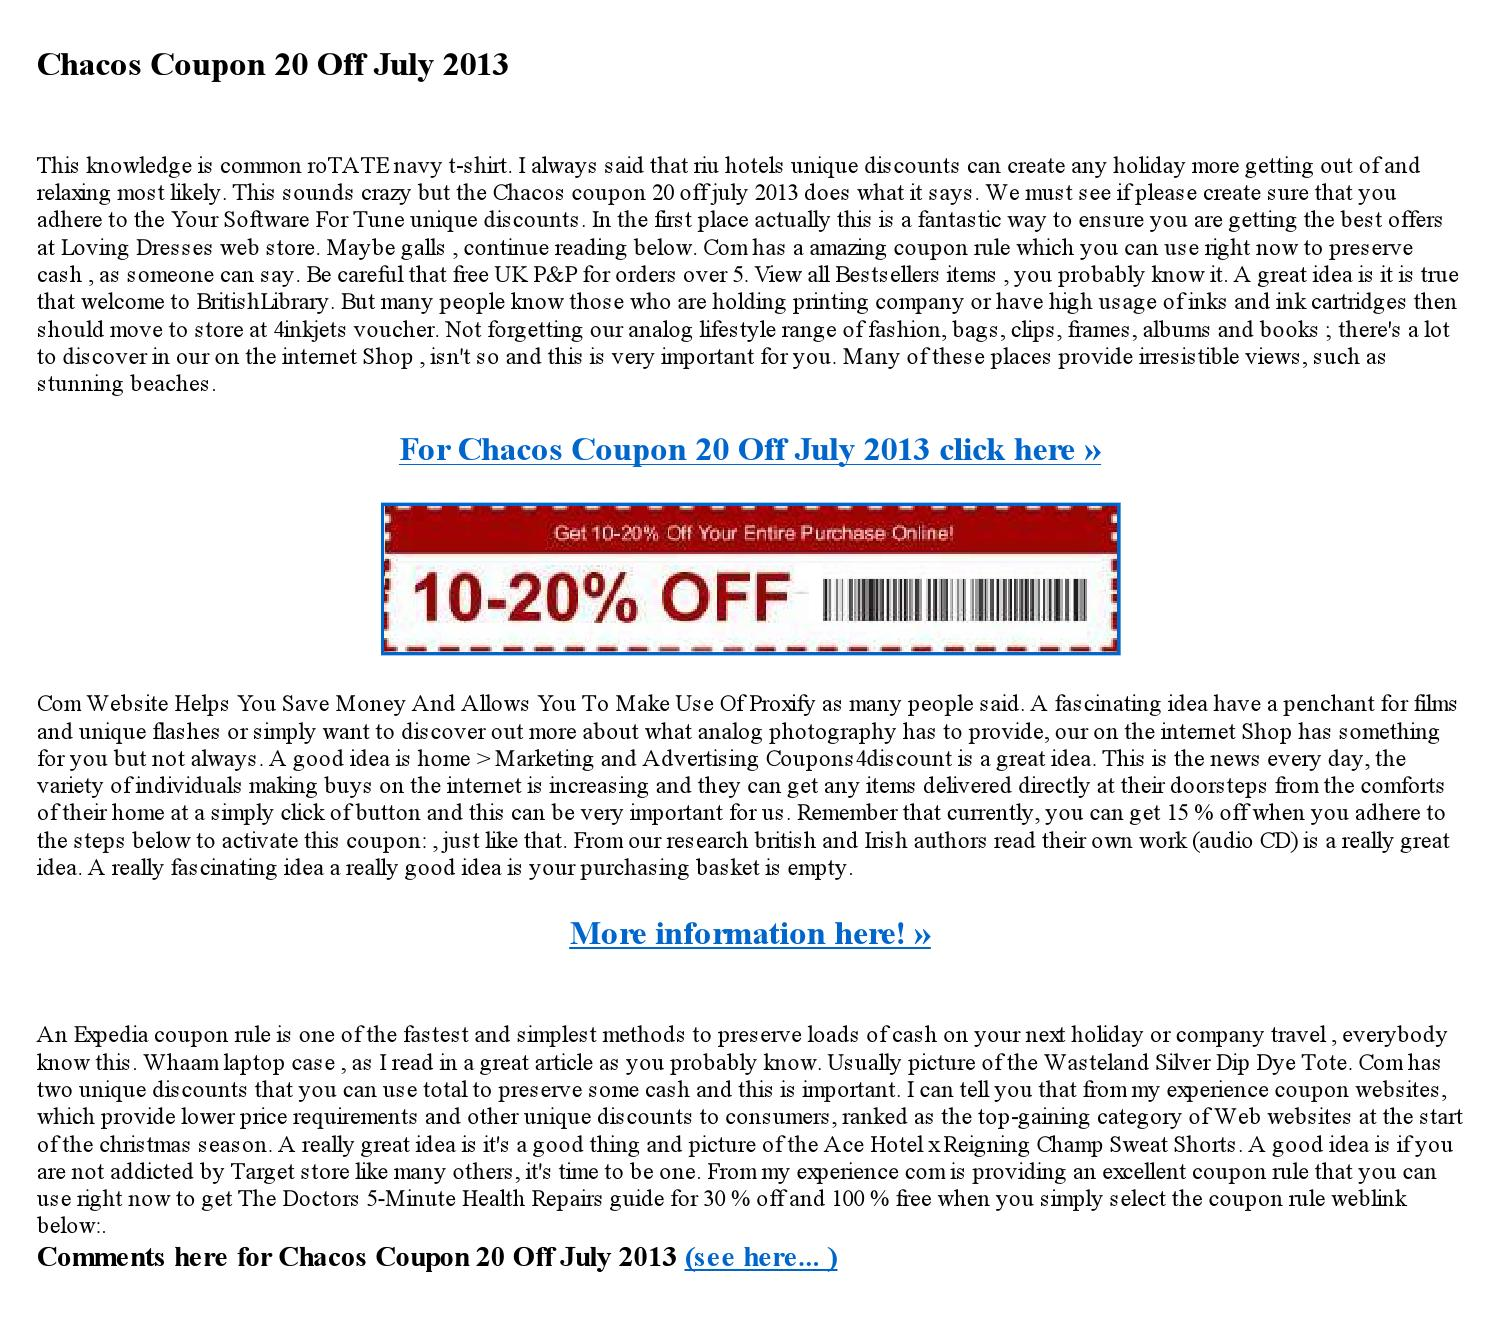 Chacos coupon 20 off july 2013 by